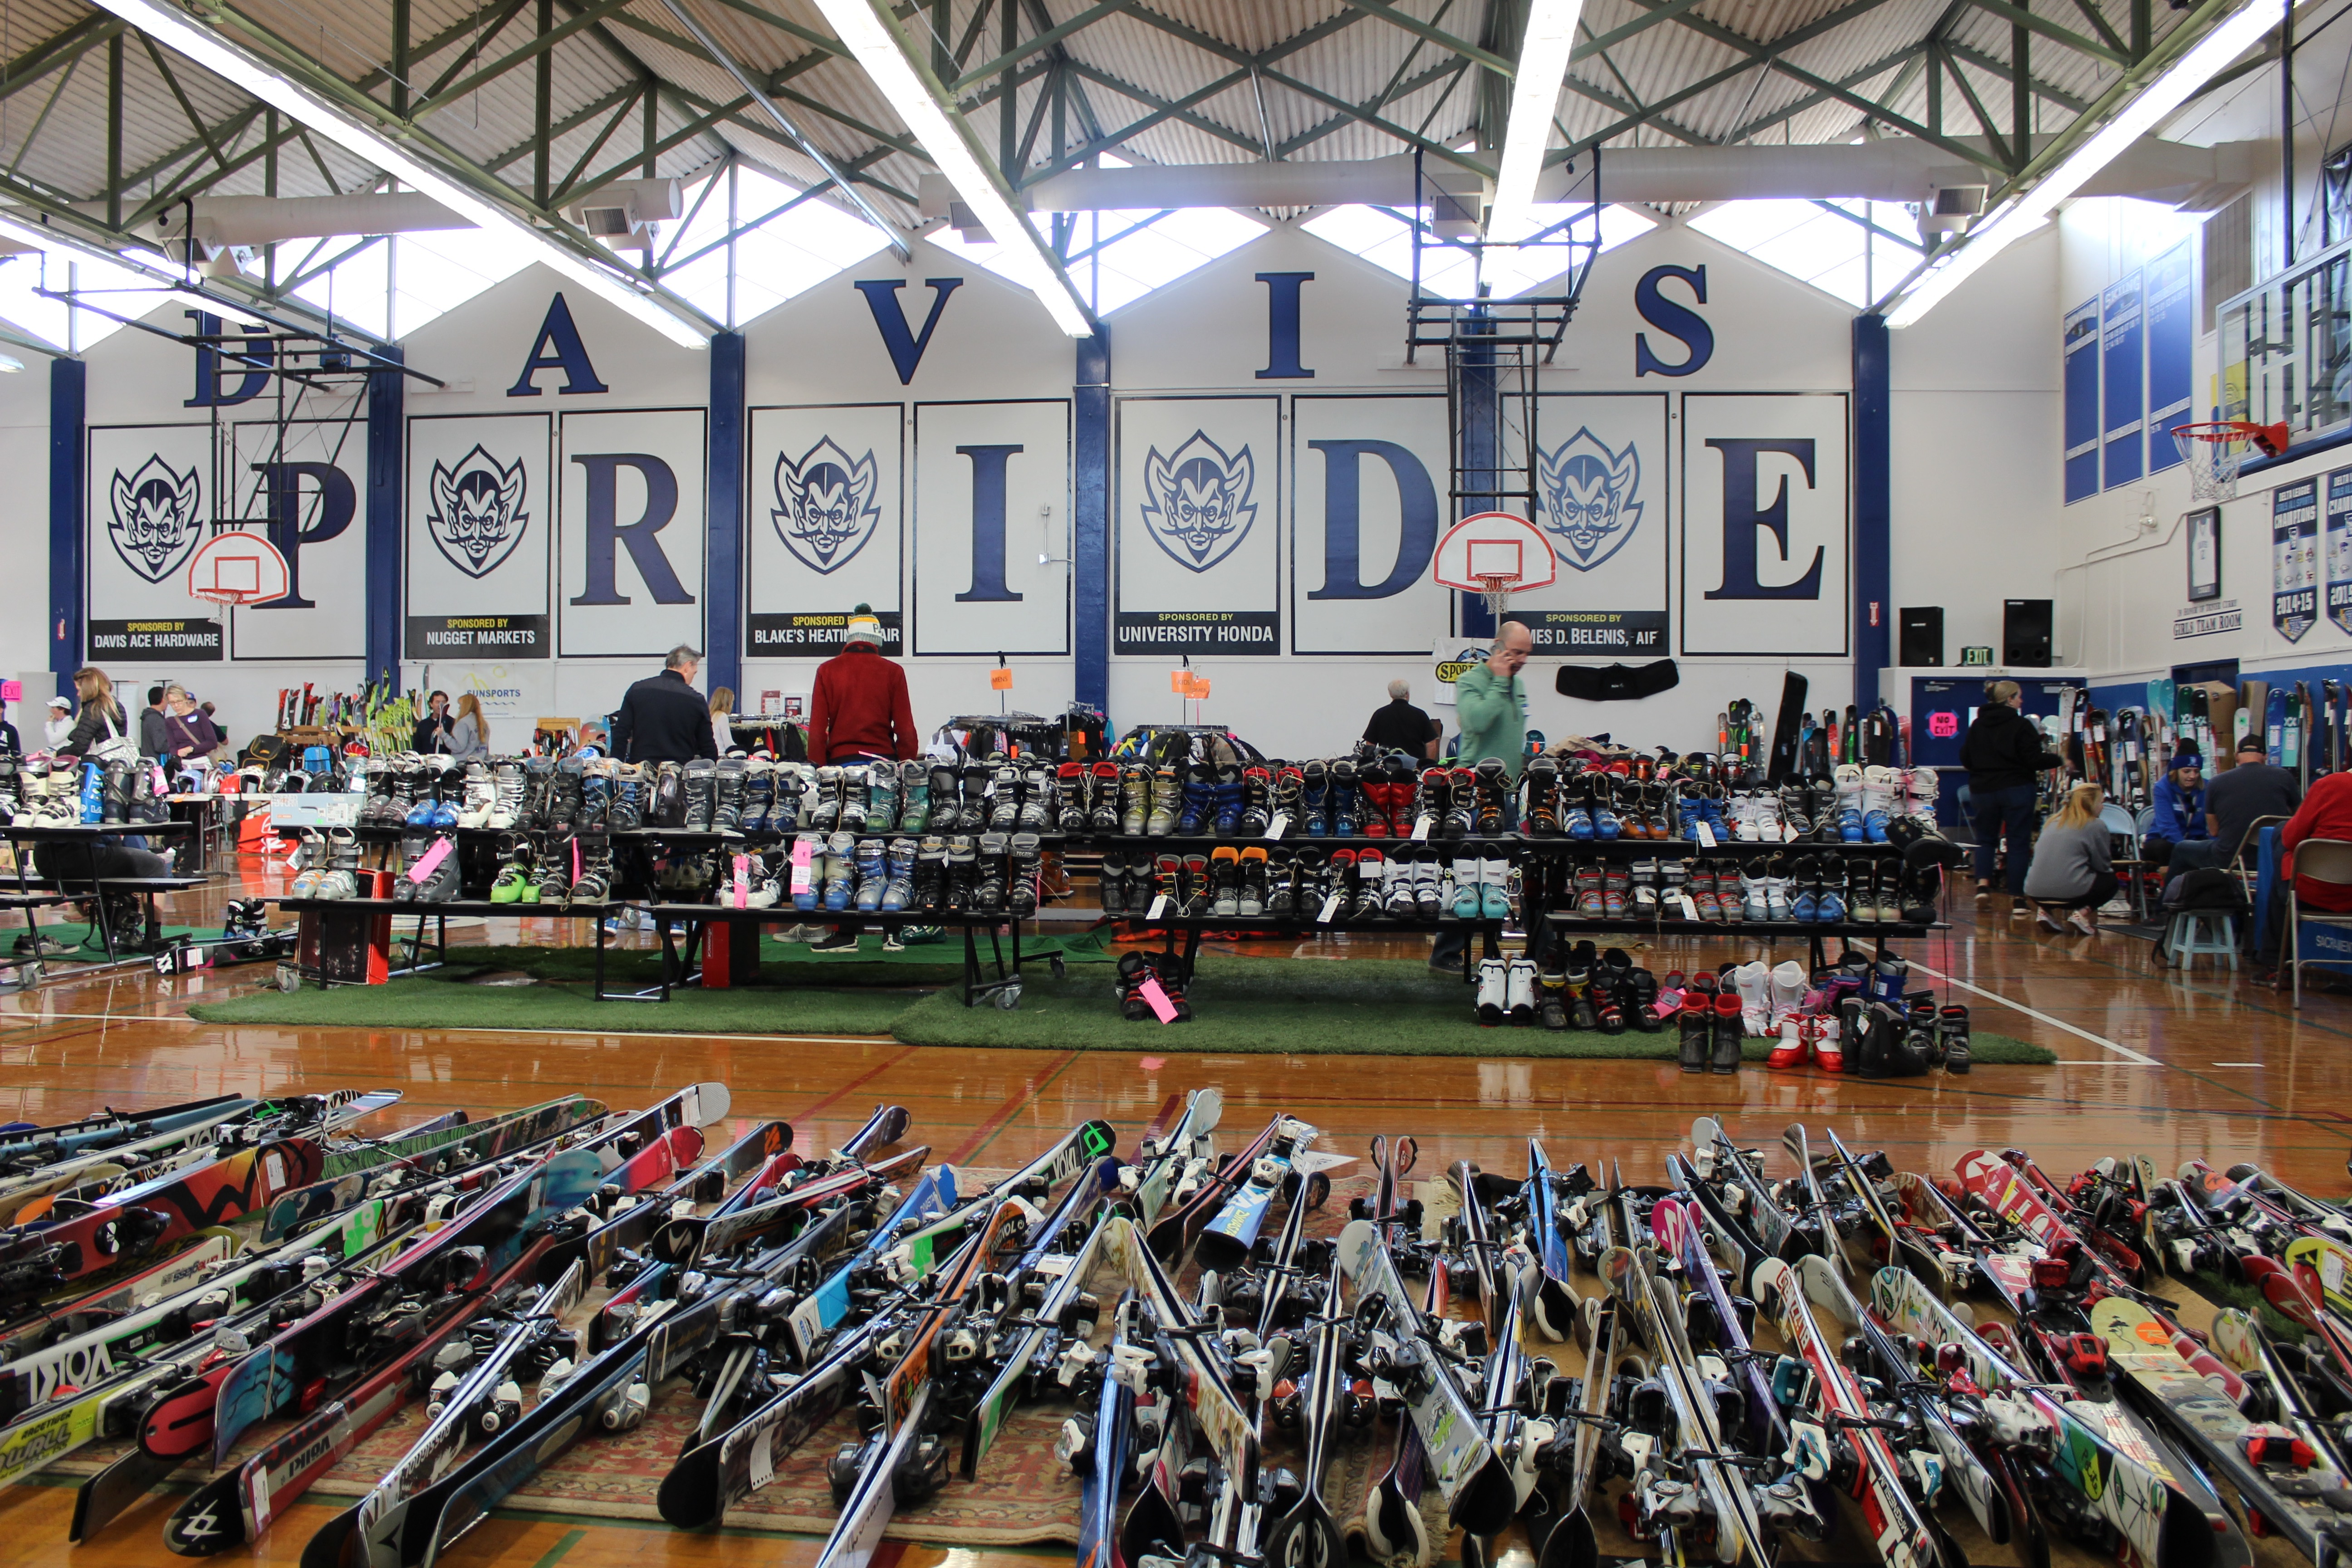 The Davis High Ski Swap offers a large variety of new and used ski equipment for sale